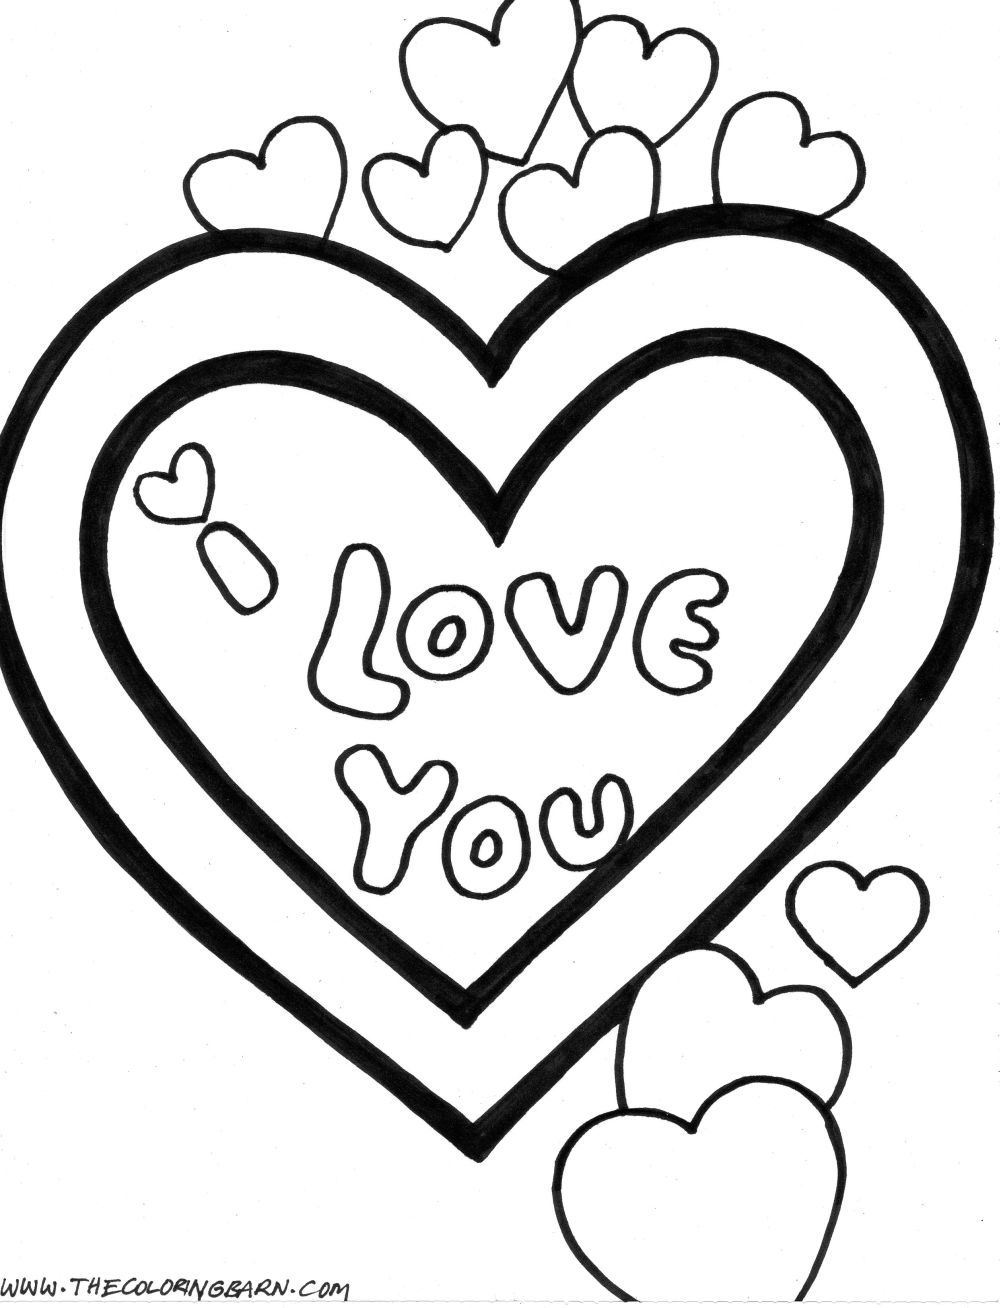 Cute Love Coloring Pages Free Large Images Valentine Coloring Pages Love Coloring Pages Heart Coloring Pages